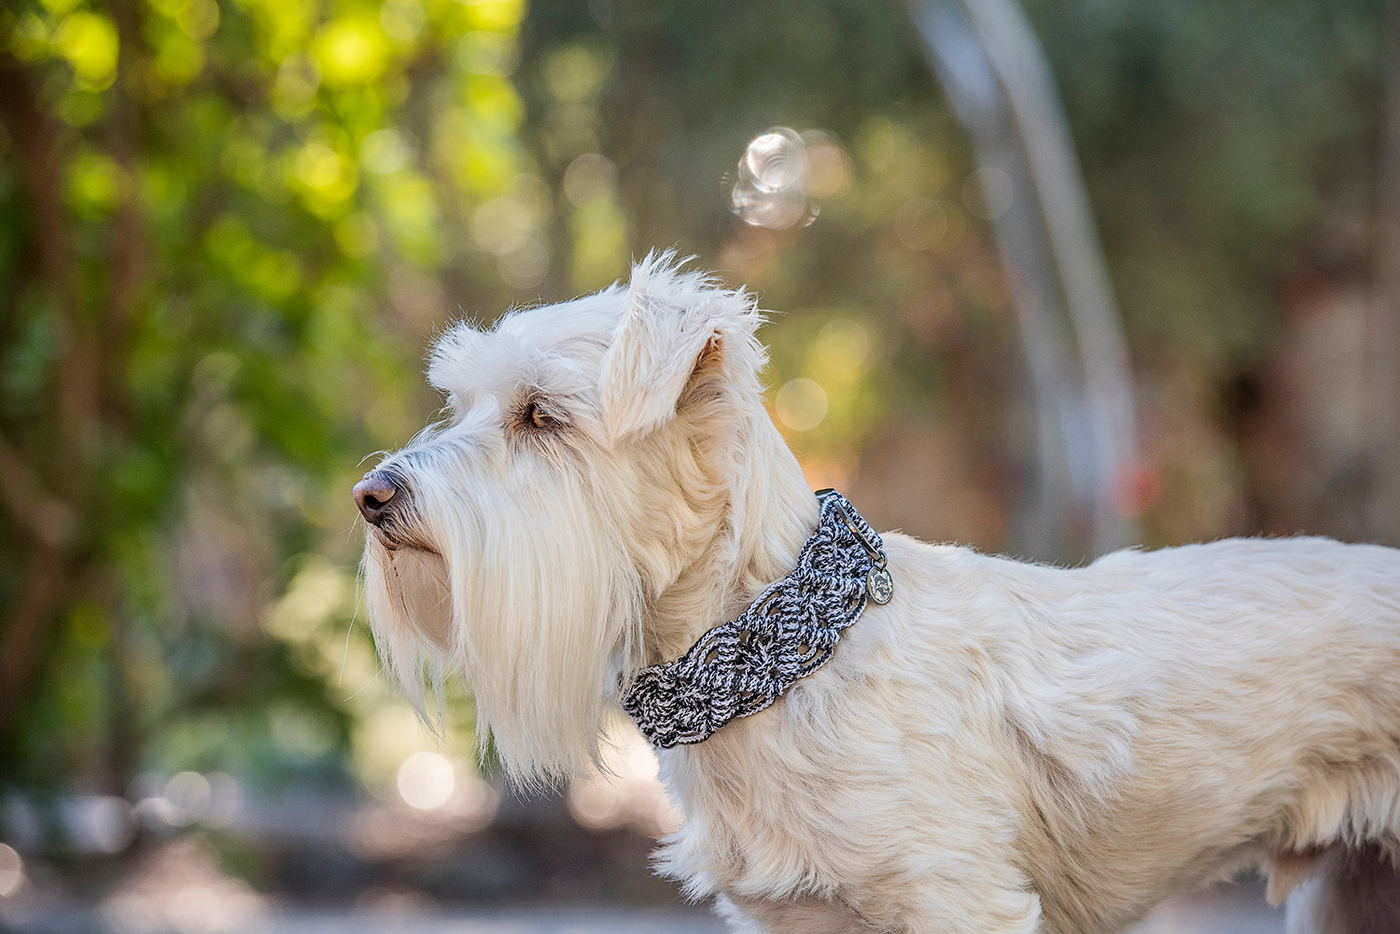 One of Erin's canine models looking smart in a Boho Pet grey macramé decorative collar